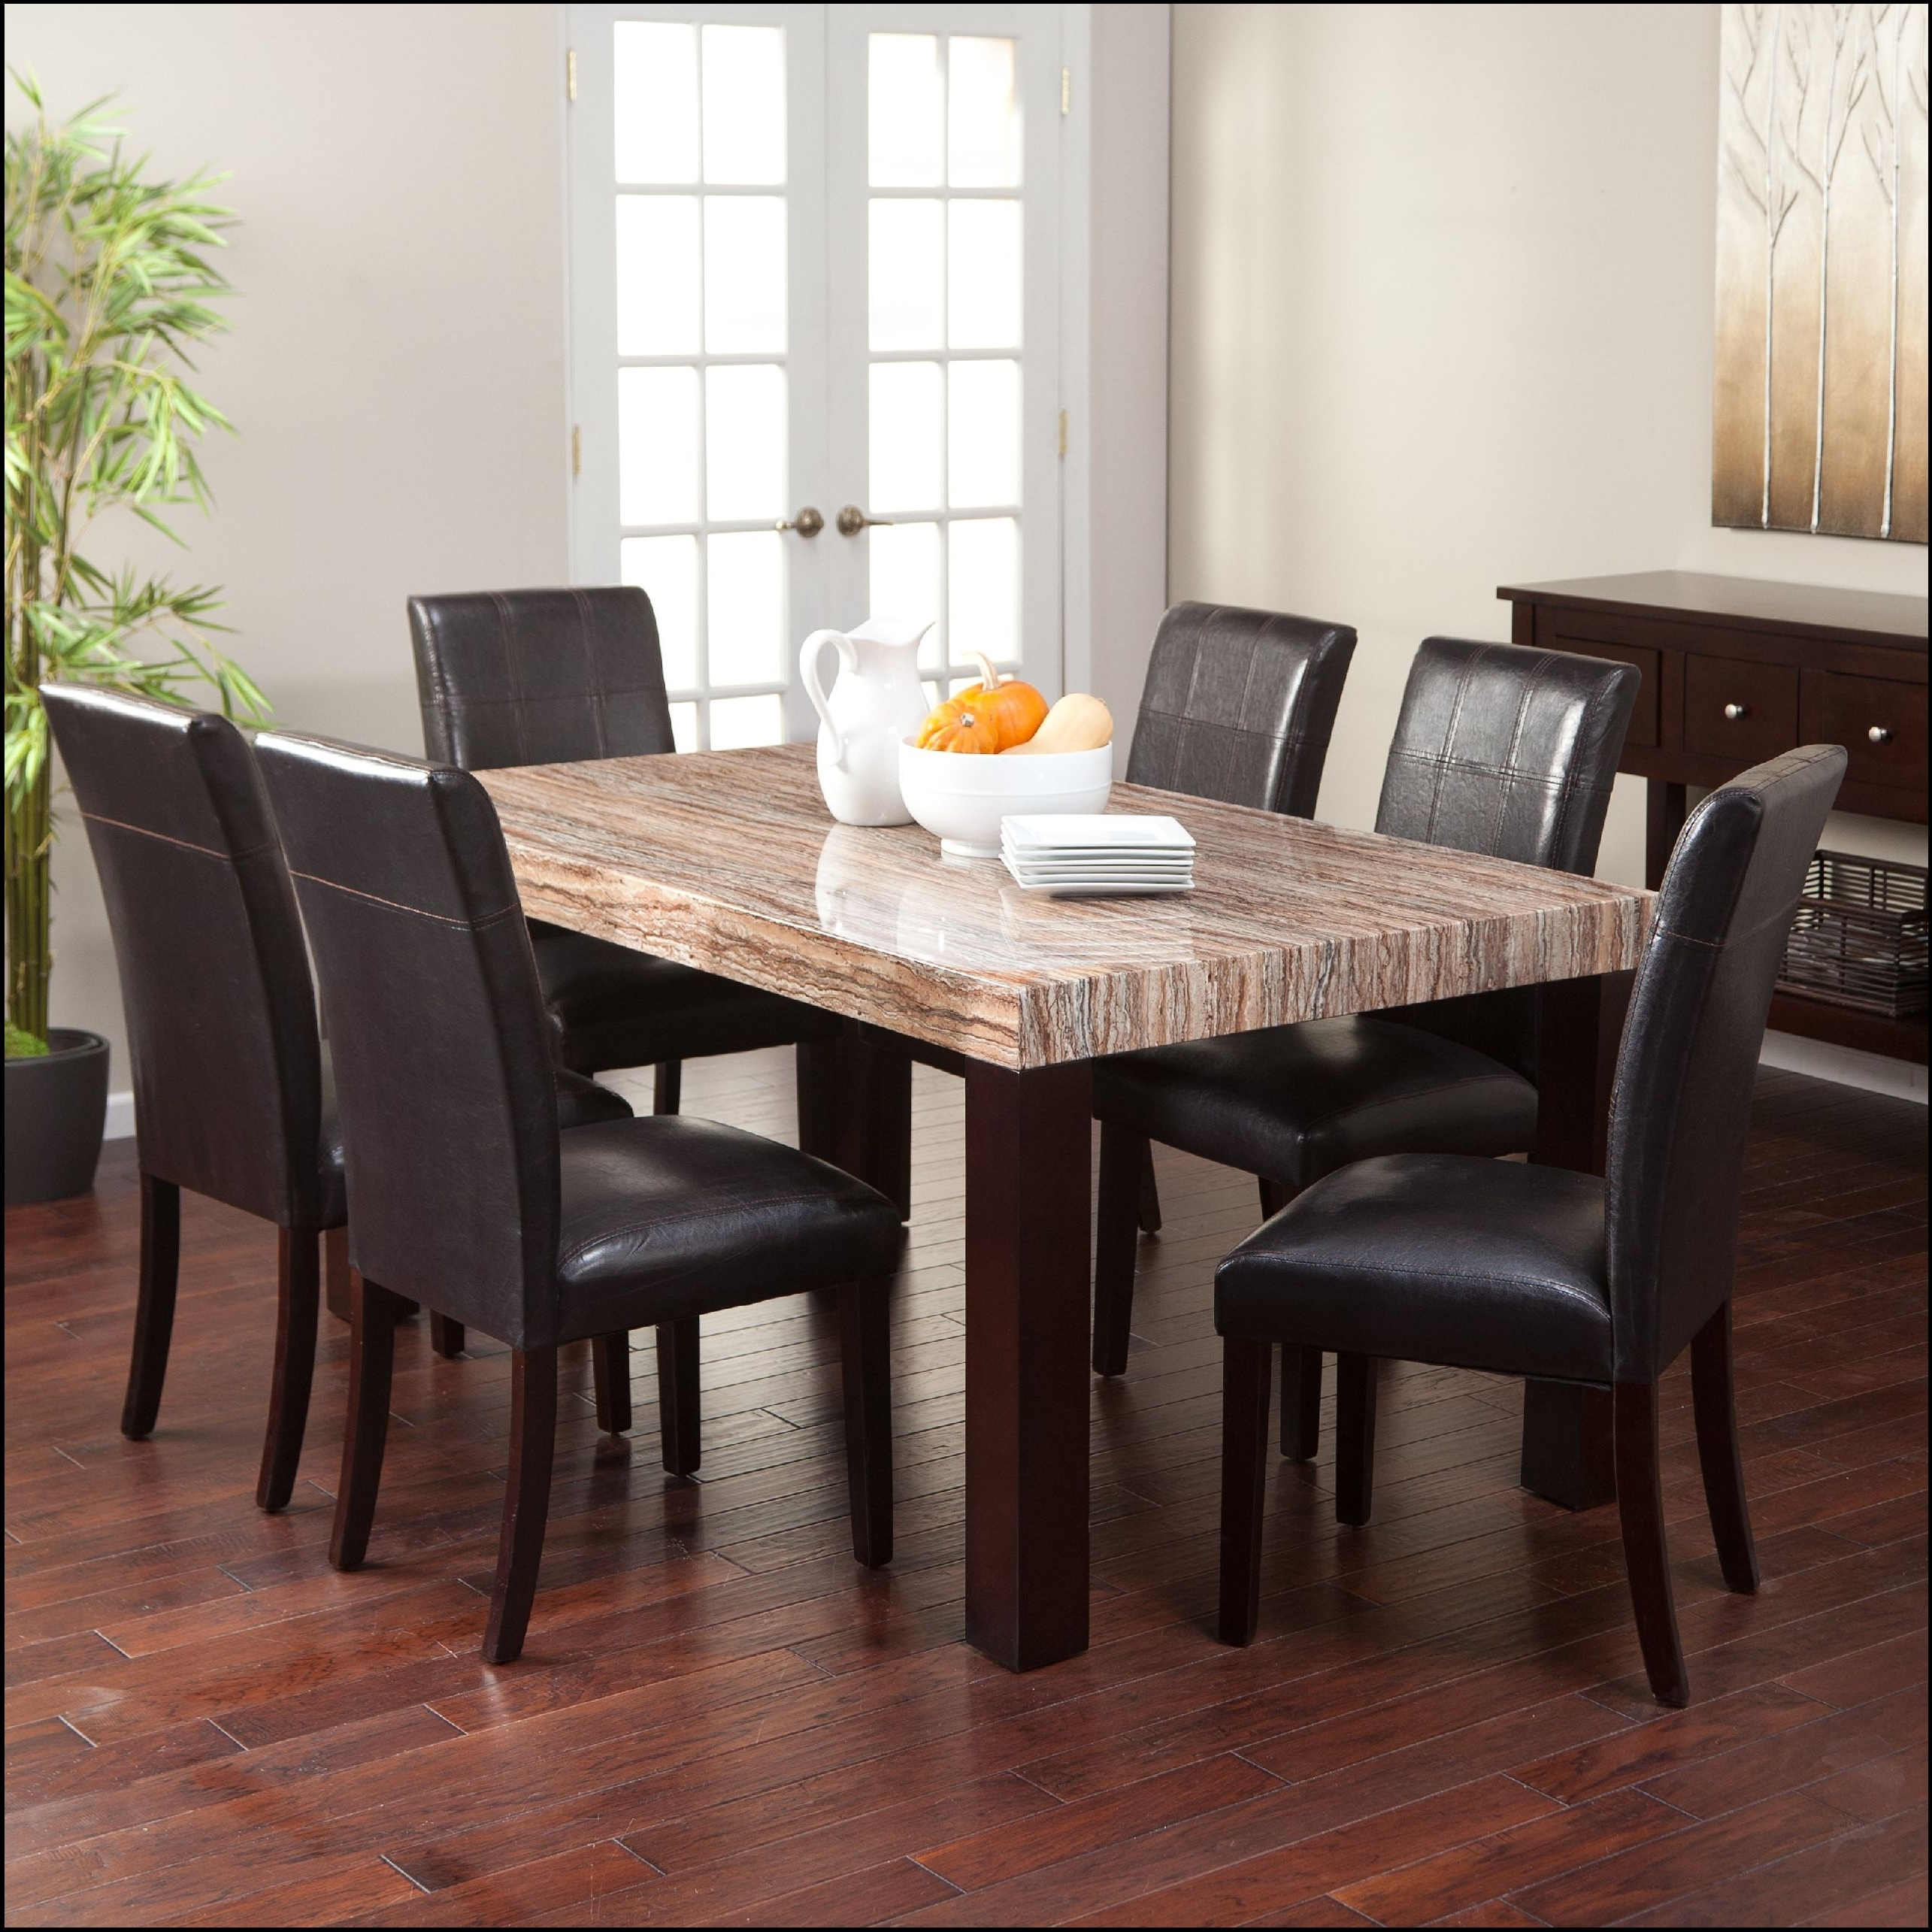 Latest 6 Chair Dining Table Sets Pertaining To Modern The Super Fun Glass Dining Table Edinburgh Photos With Dining (View 15 of 25)